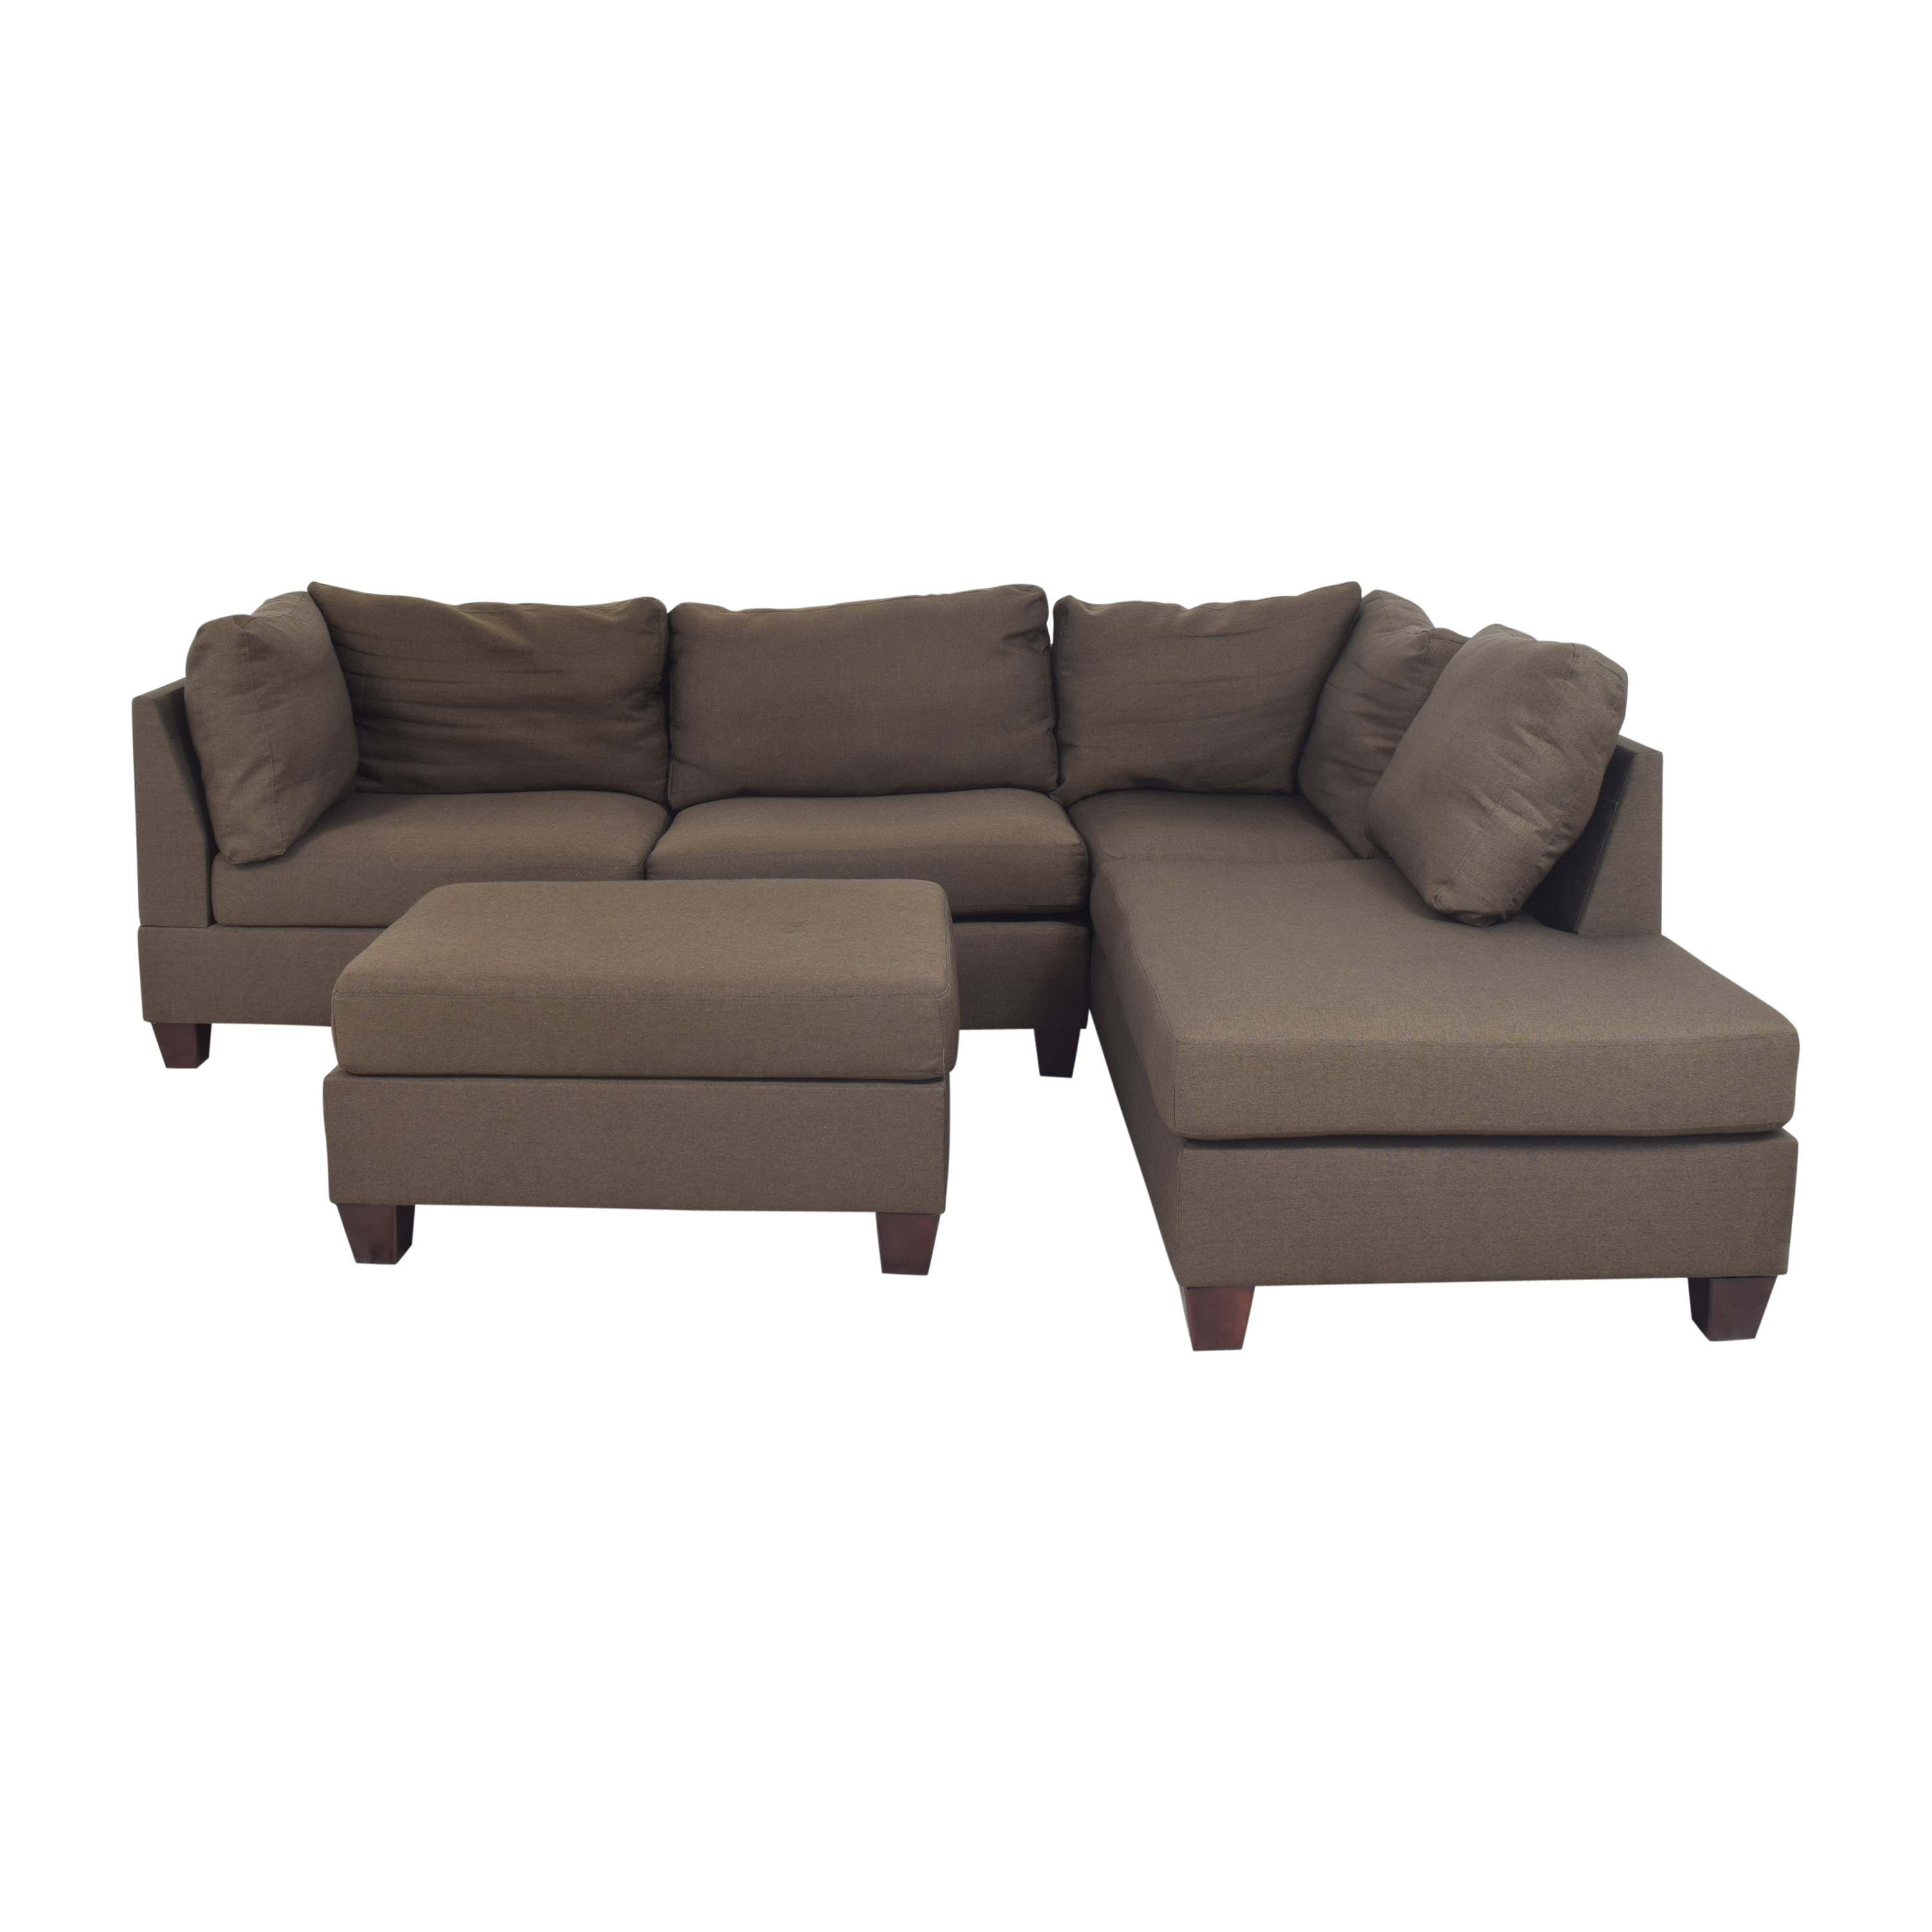 Wayfair Wayfair Jacober Wide Reversible Chaise Sectional with Ottoman price